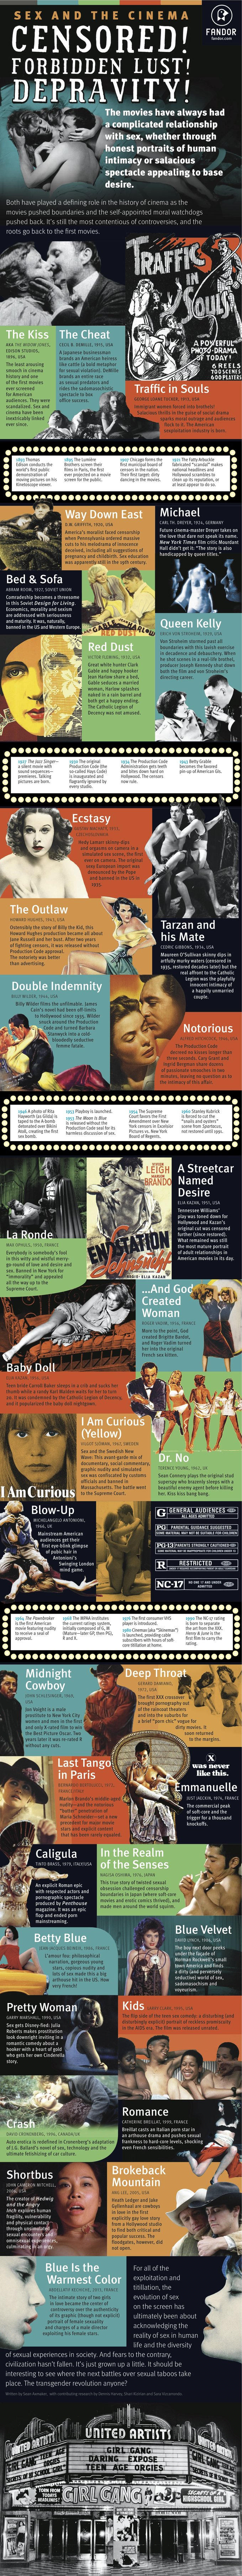 history-of-sexploitation-in-infographic-form